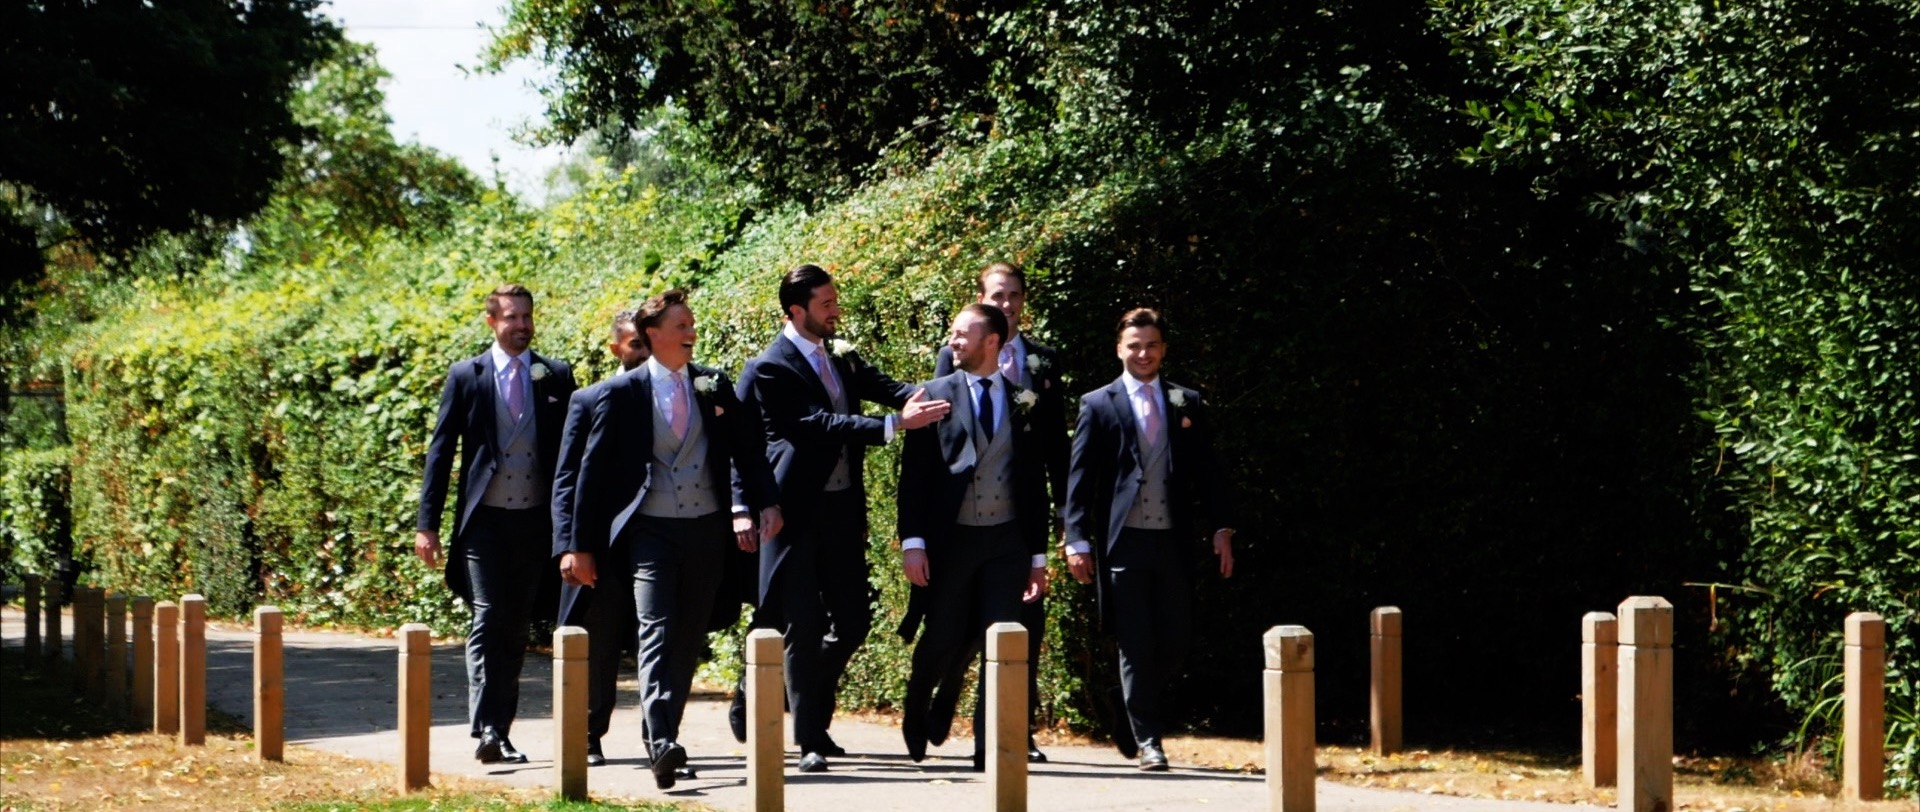 The Fennes Groomsmen